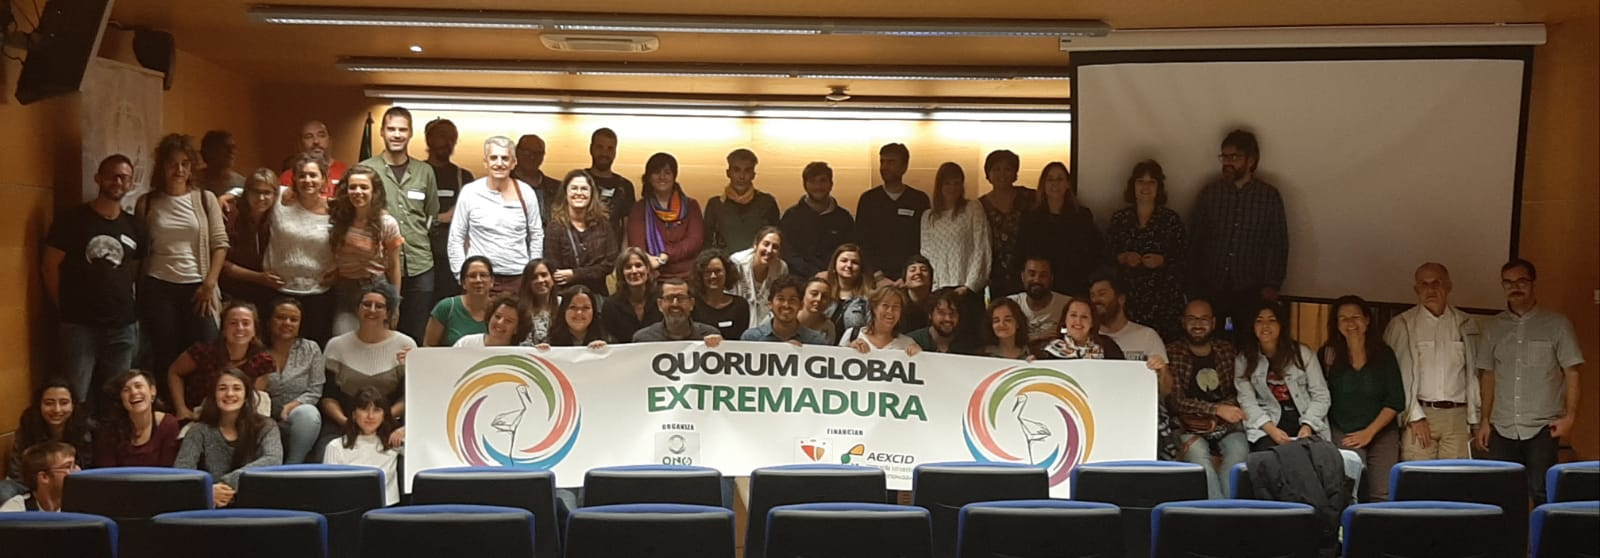 CRÓNICAS DE QUORUM GLOBAL EXTREMADURA